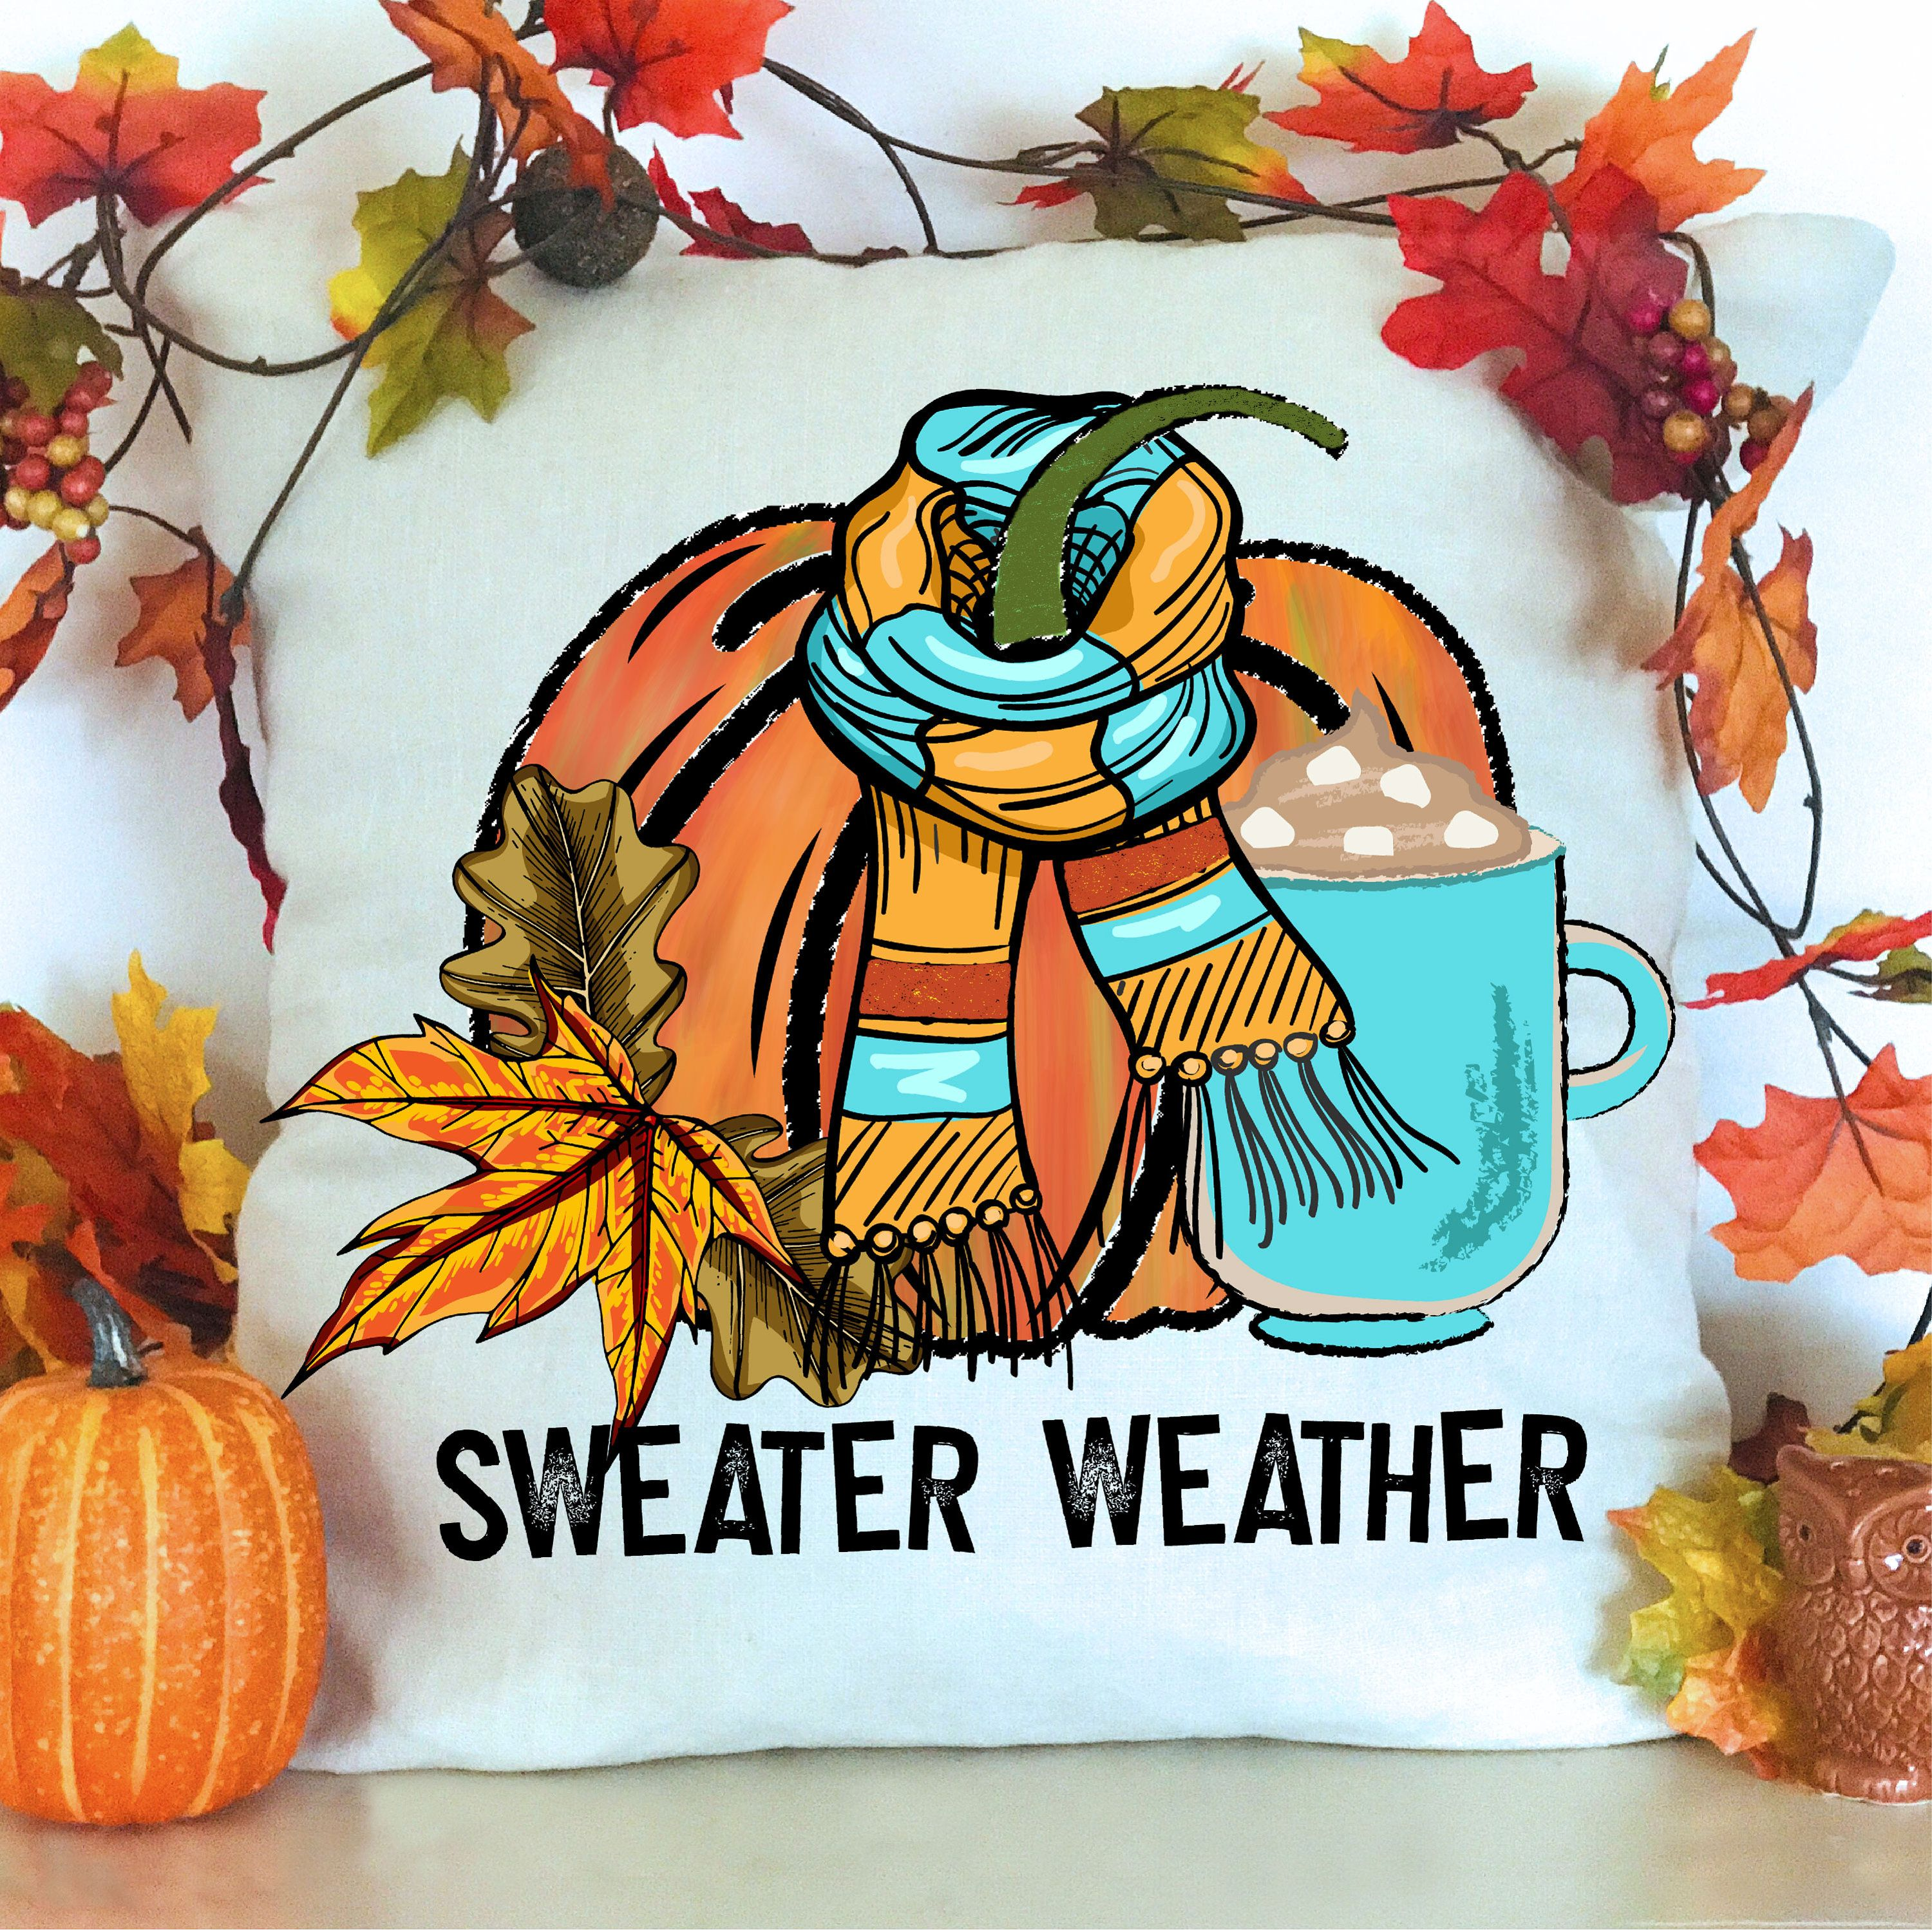 Sweater Weather Png File For Sublimation Printing Dtg Printing Etsy In 2020 Prints Sweater Weather Sublime